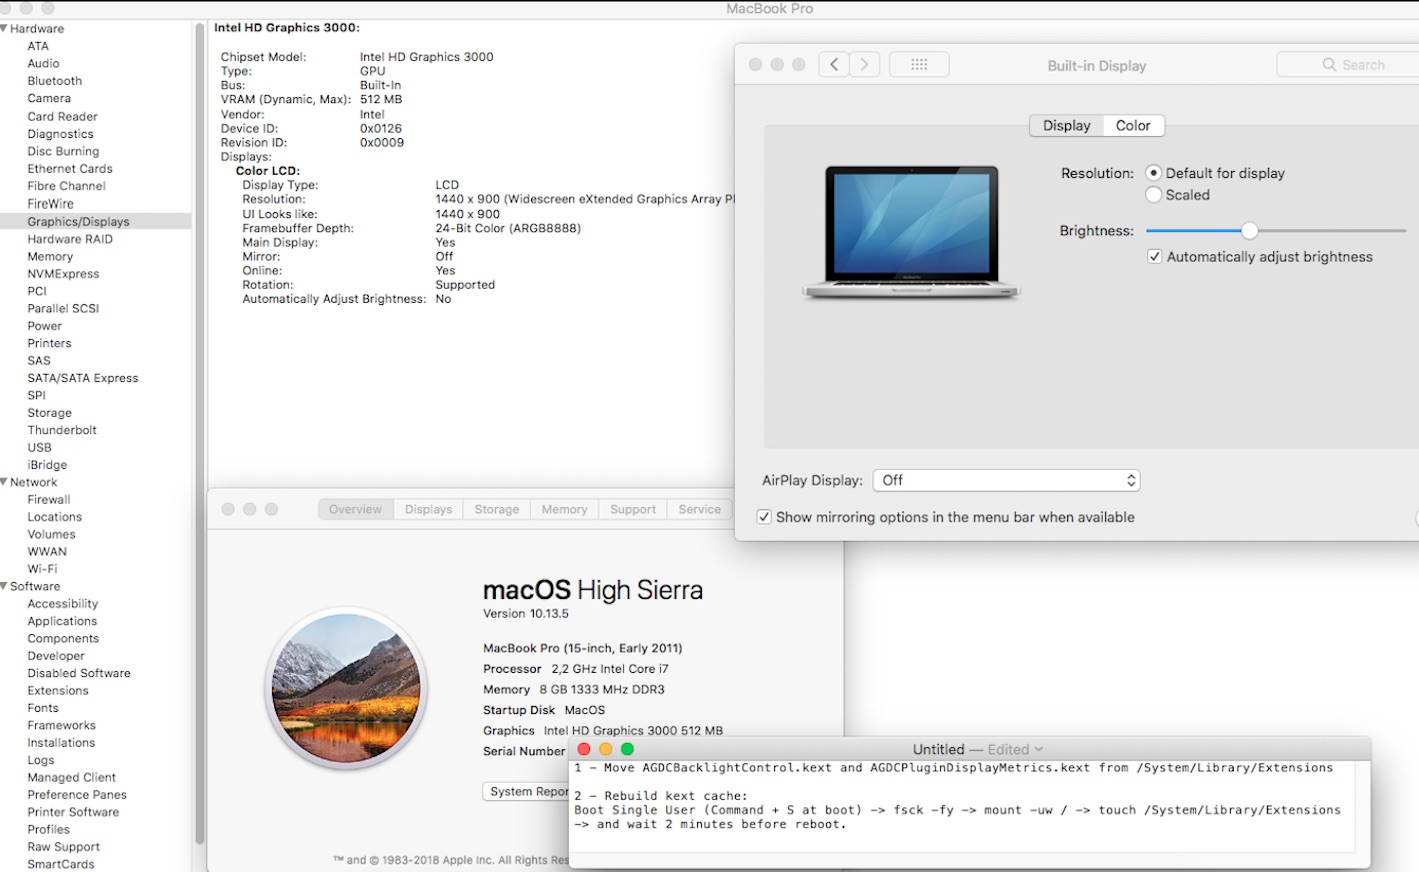 Macbook Pro 2011 - Disable AMD GPU · GitHub